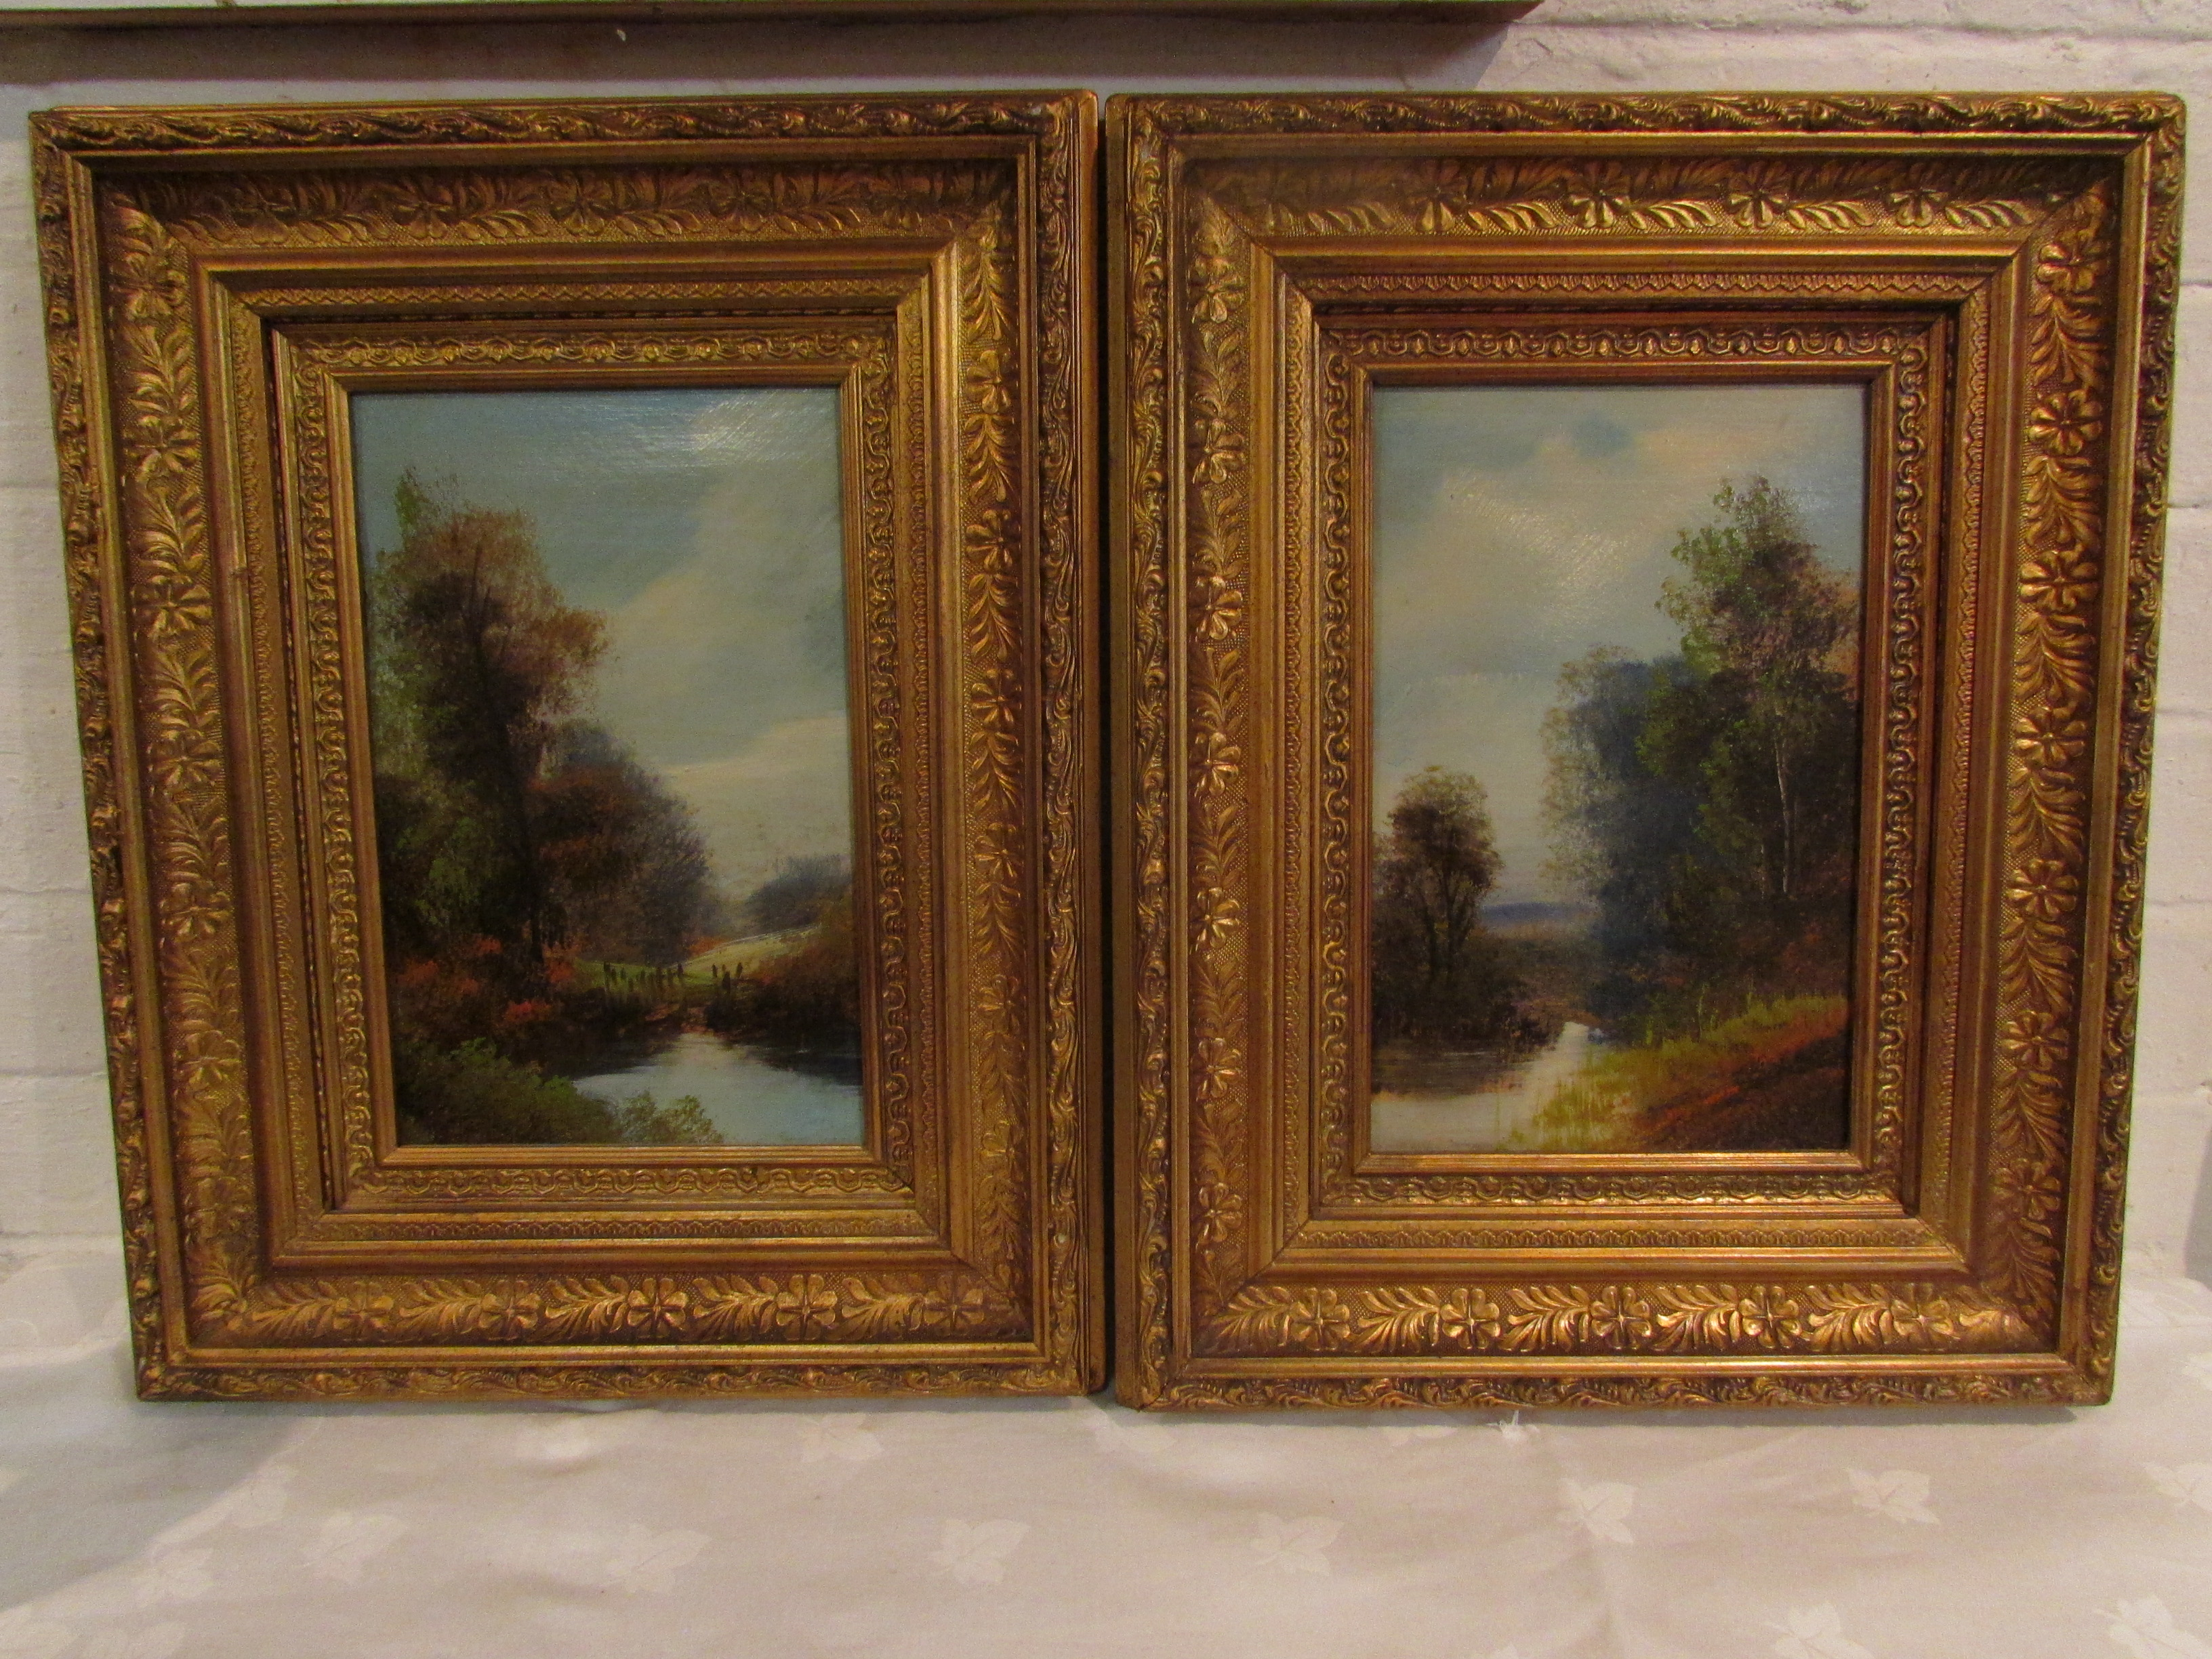 Lot 221 - Two corresponding oils on board of river scenes, each 27cm x 17cm in recessed moulded gilt frames